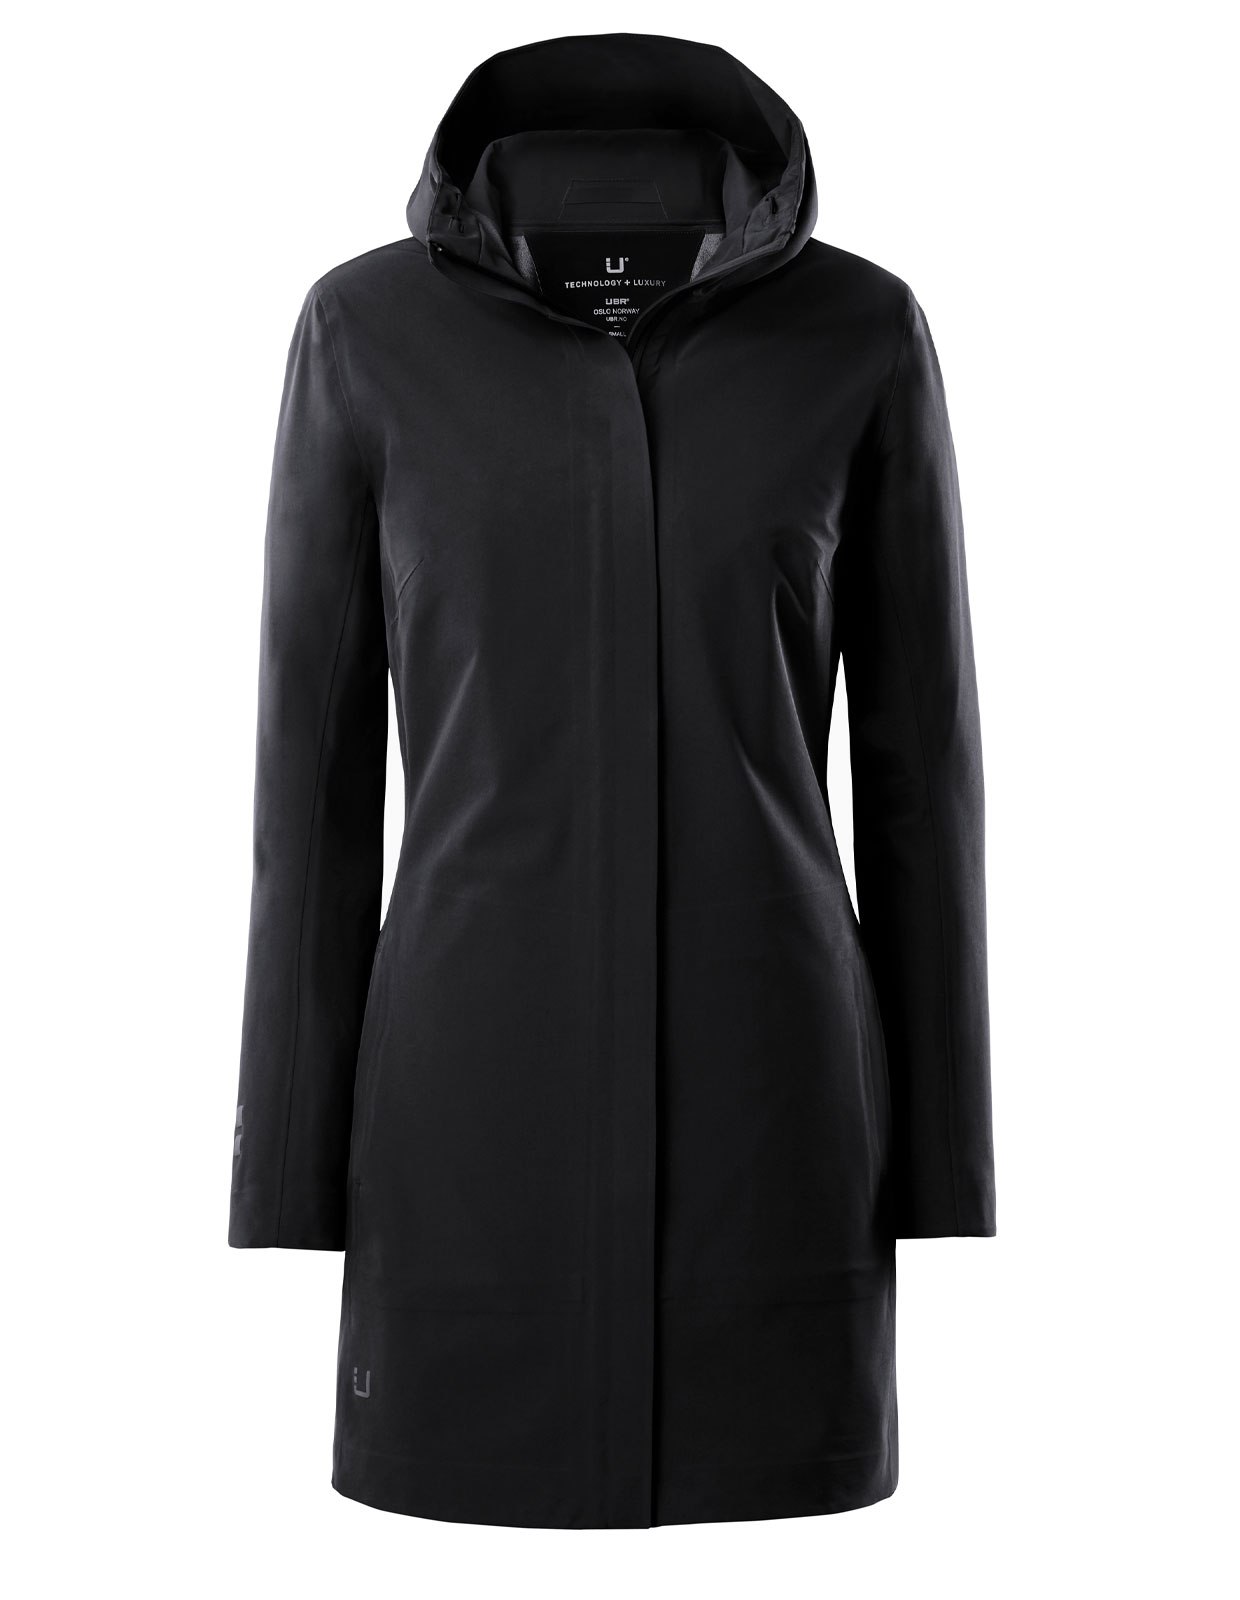 Althena Coat Black